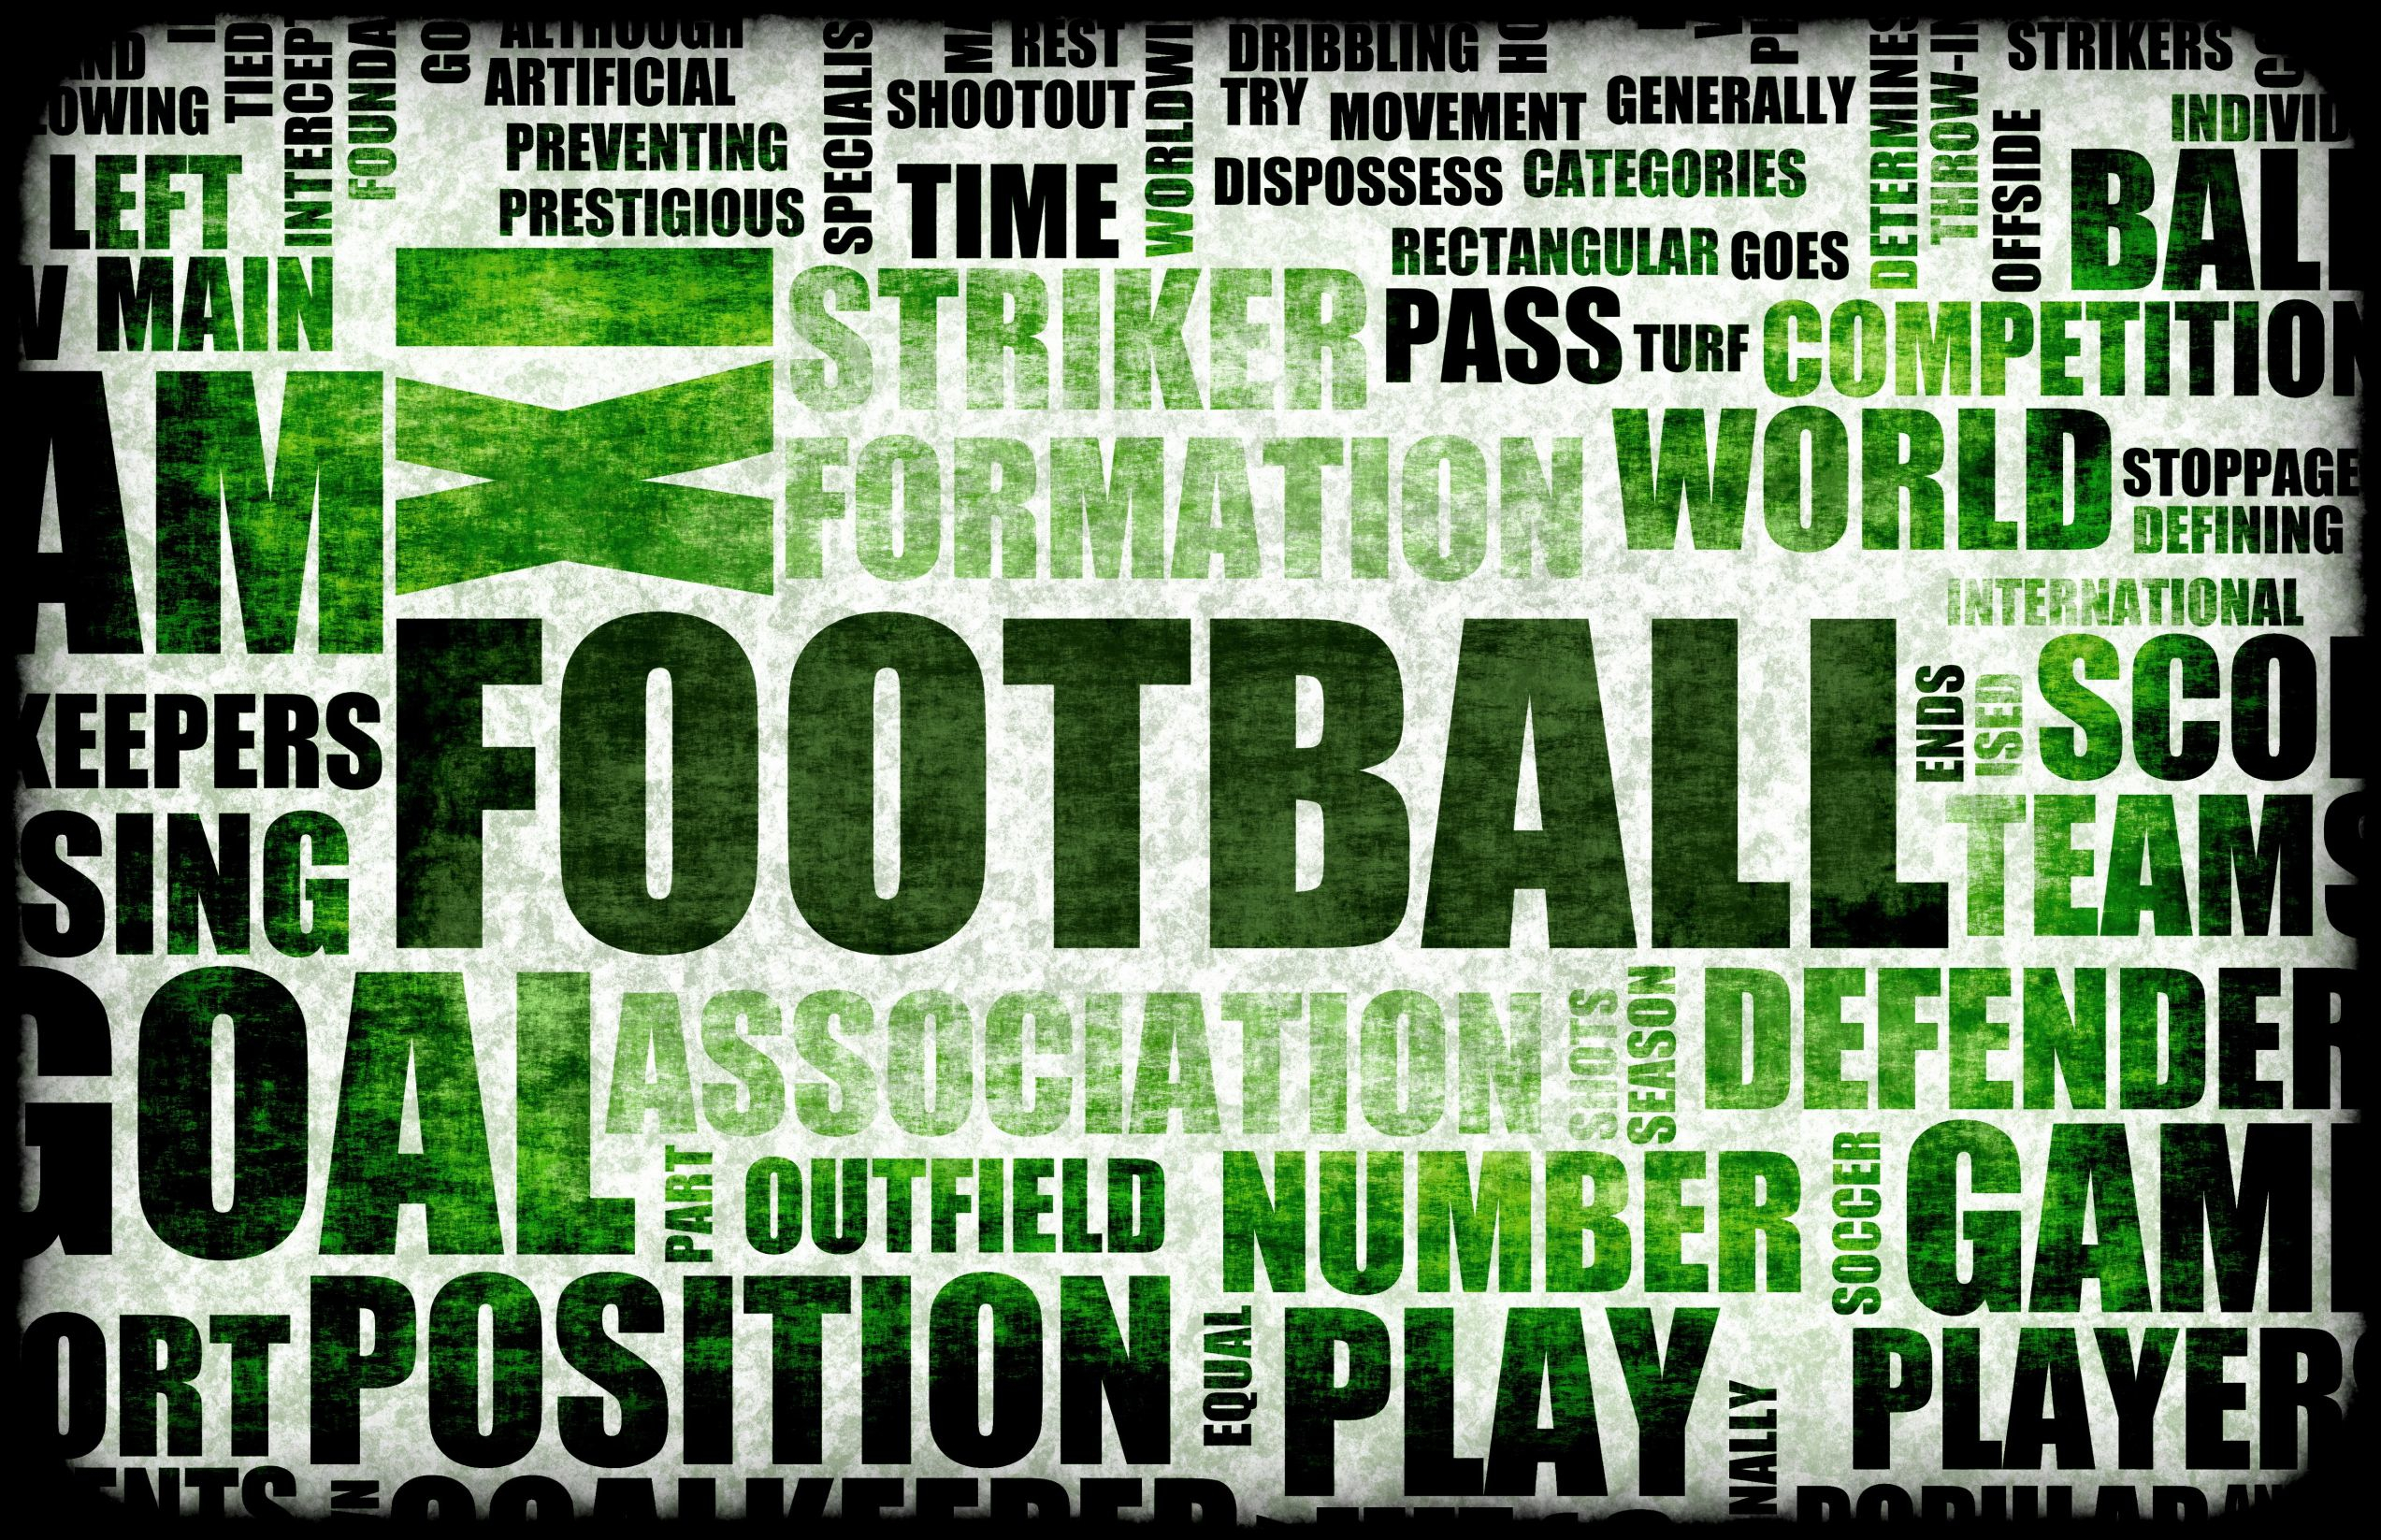 Football Glossary: (to) Pull the strings